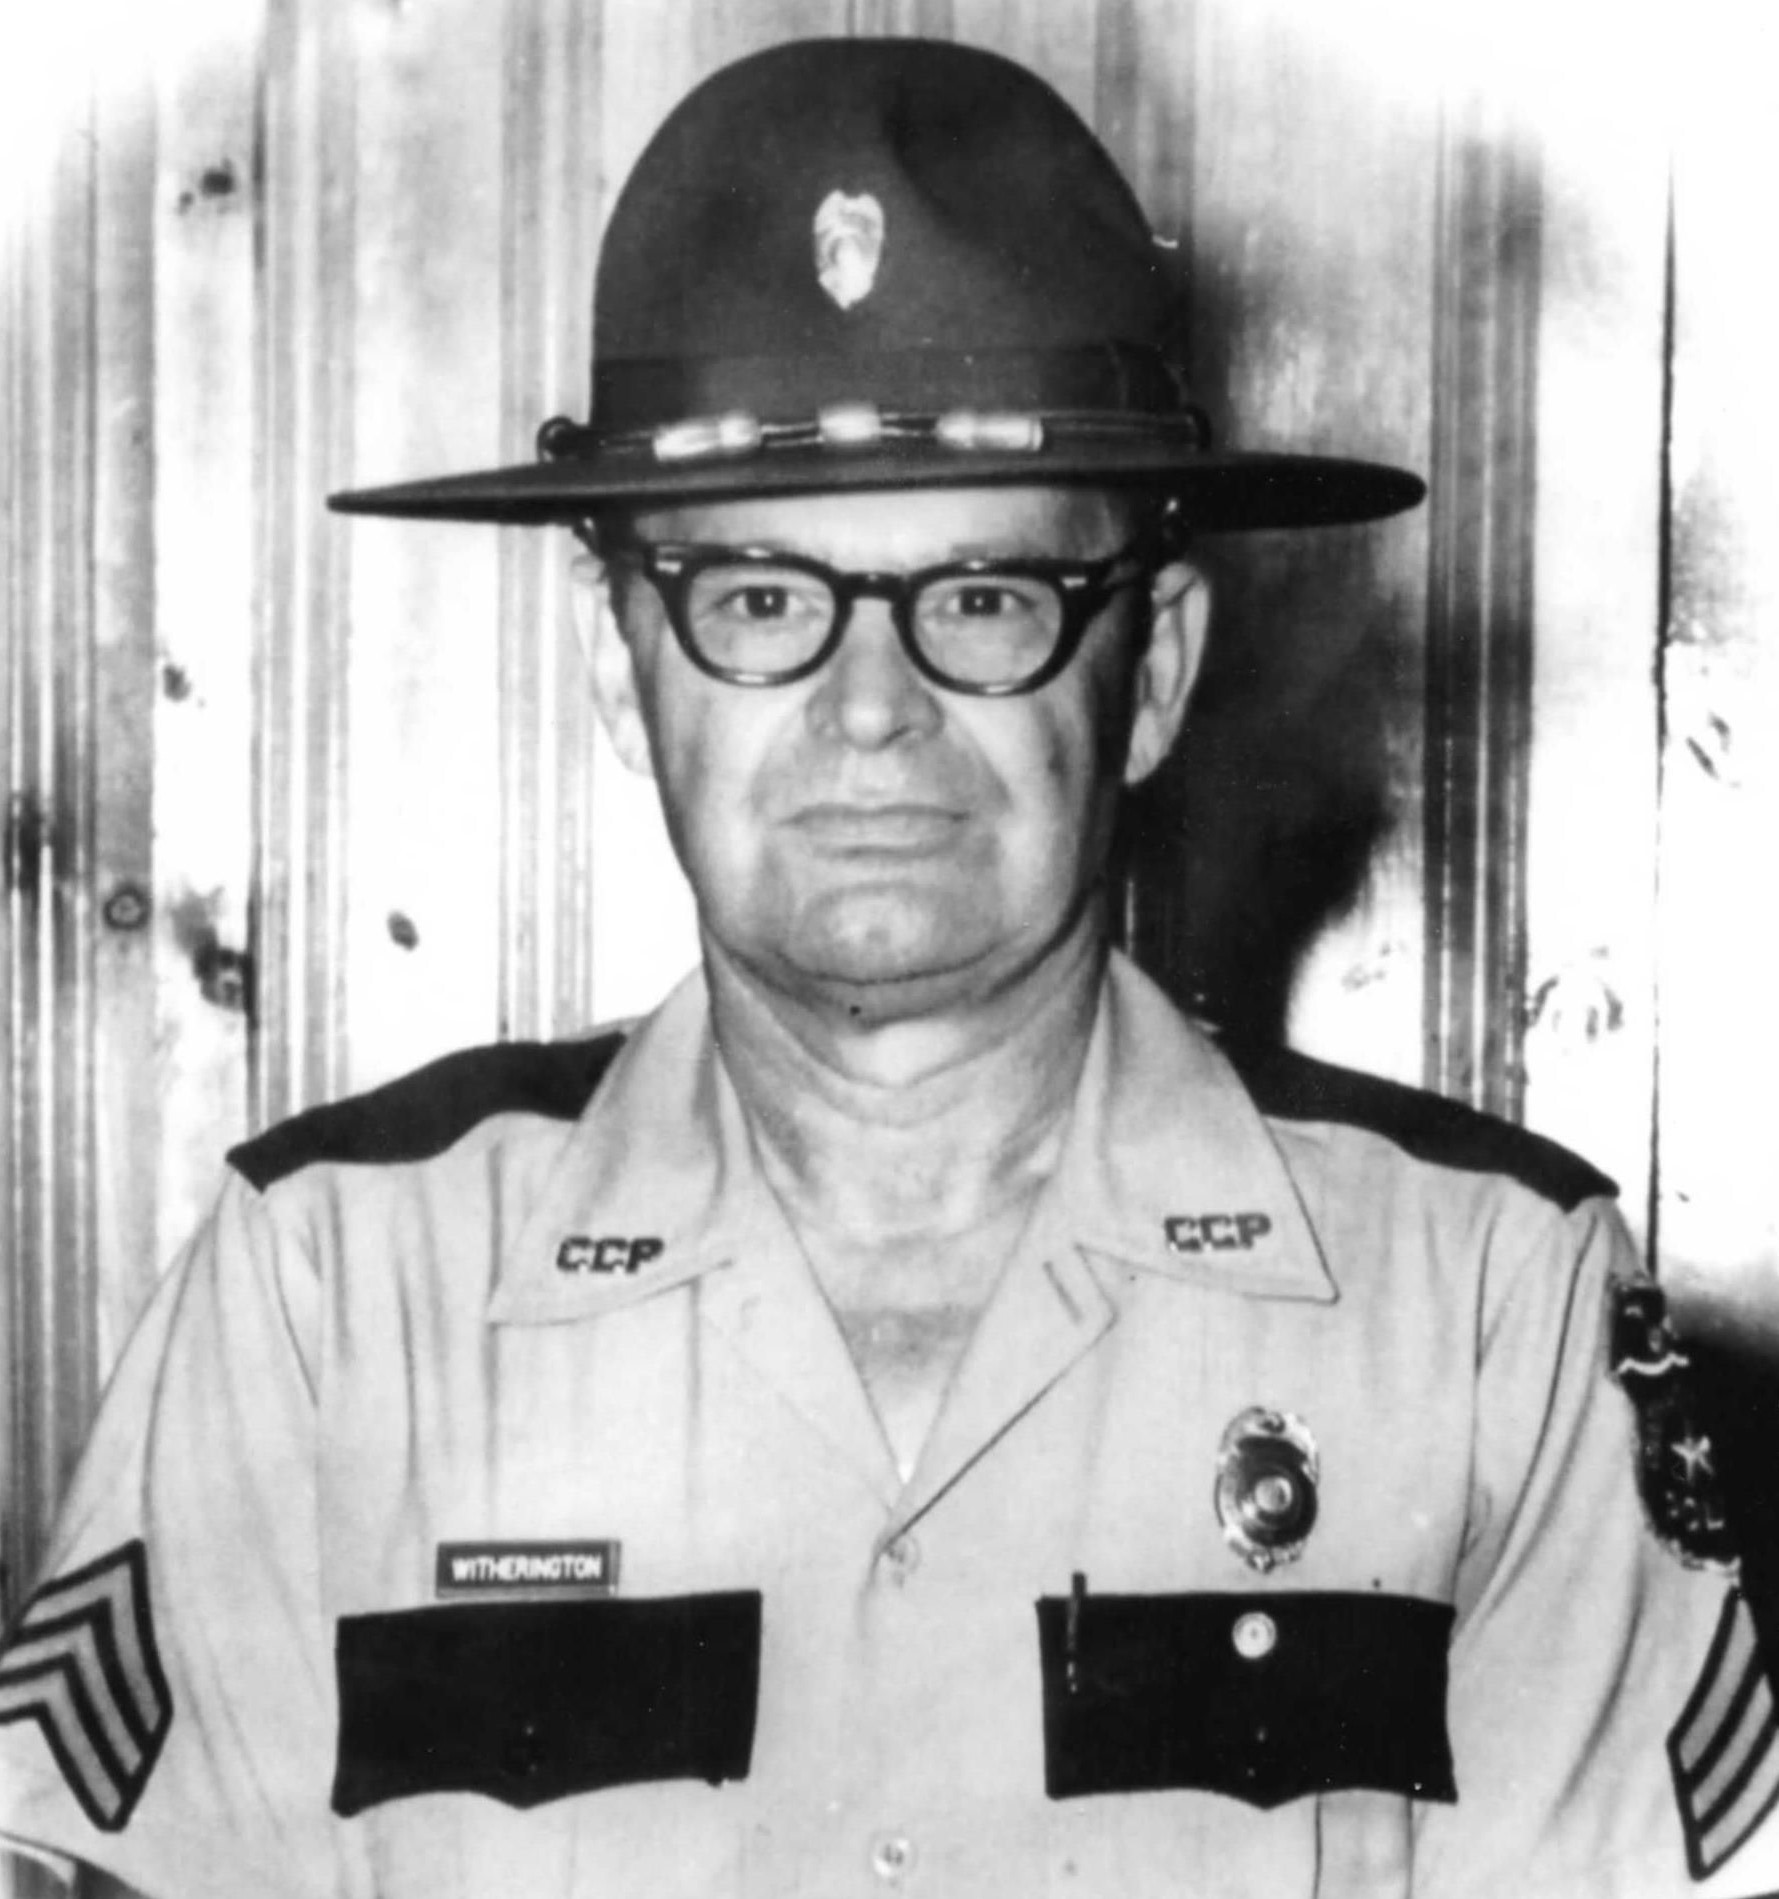 Lieutenant Dennis Witherington | Chatham County Police Department, Georgia